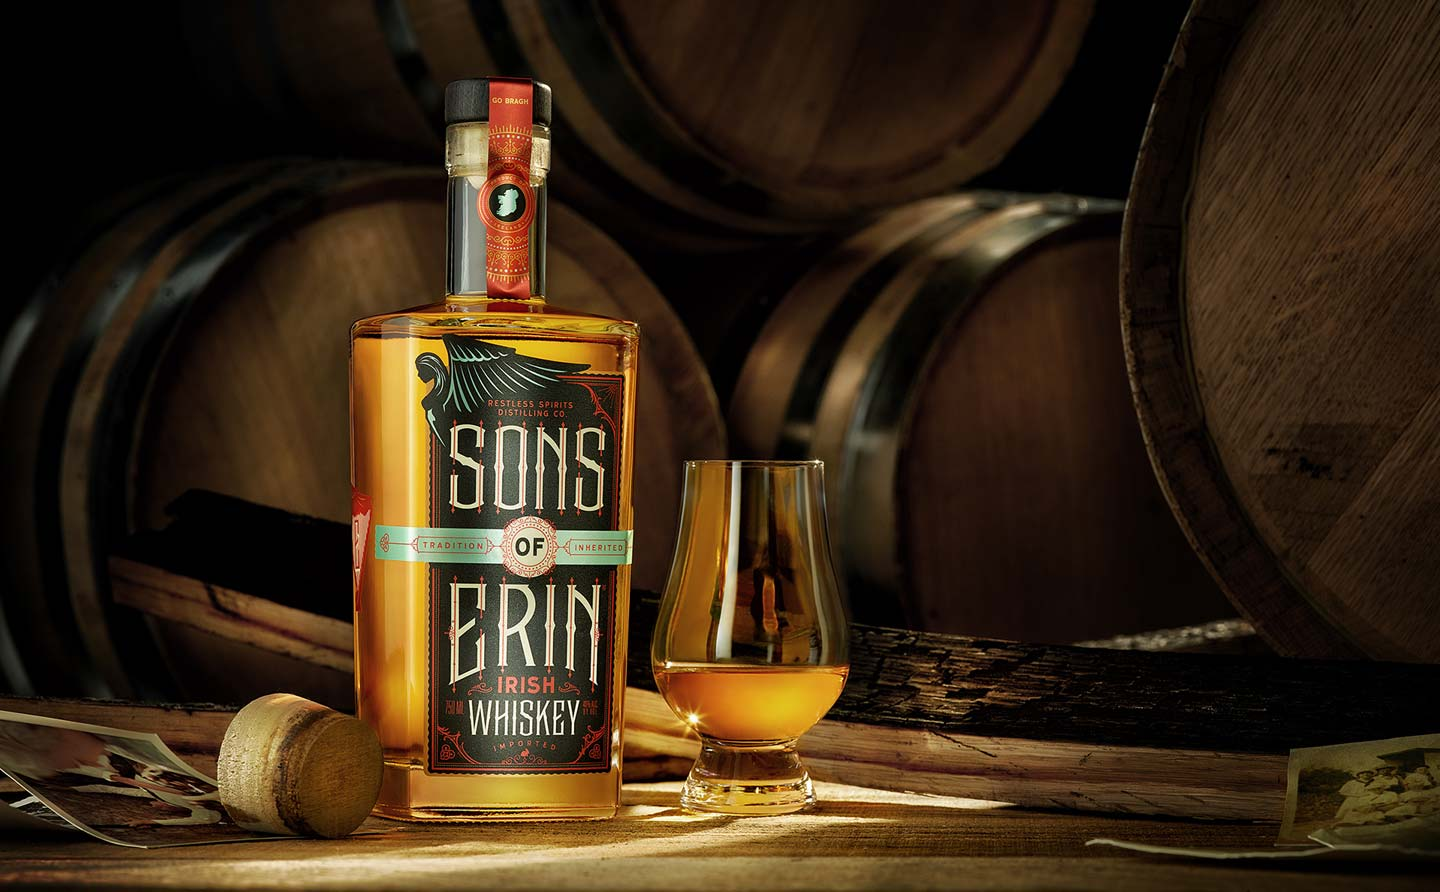 Sons of Erin Irish Whiskey